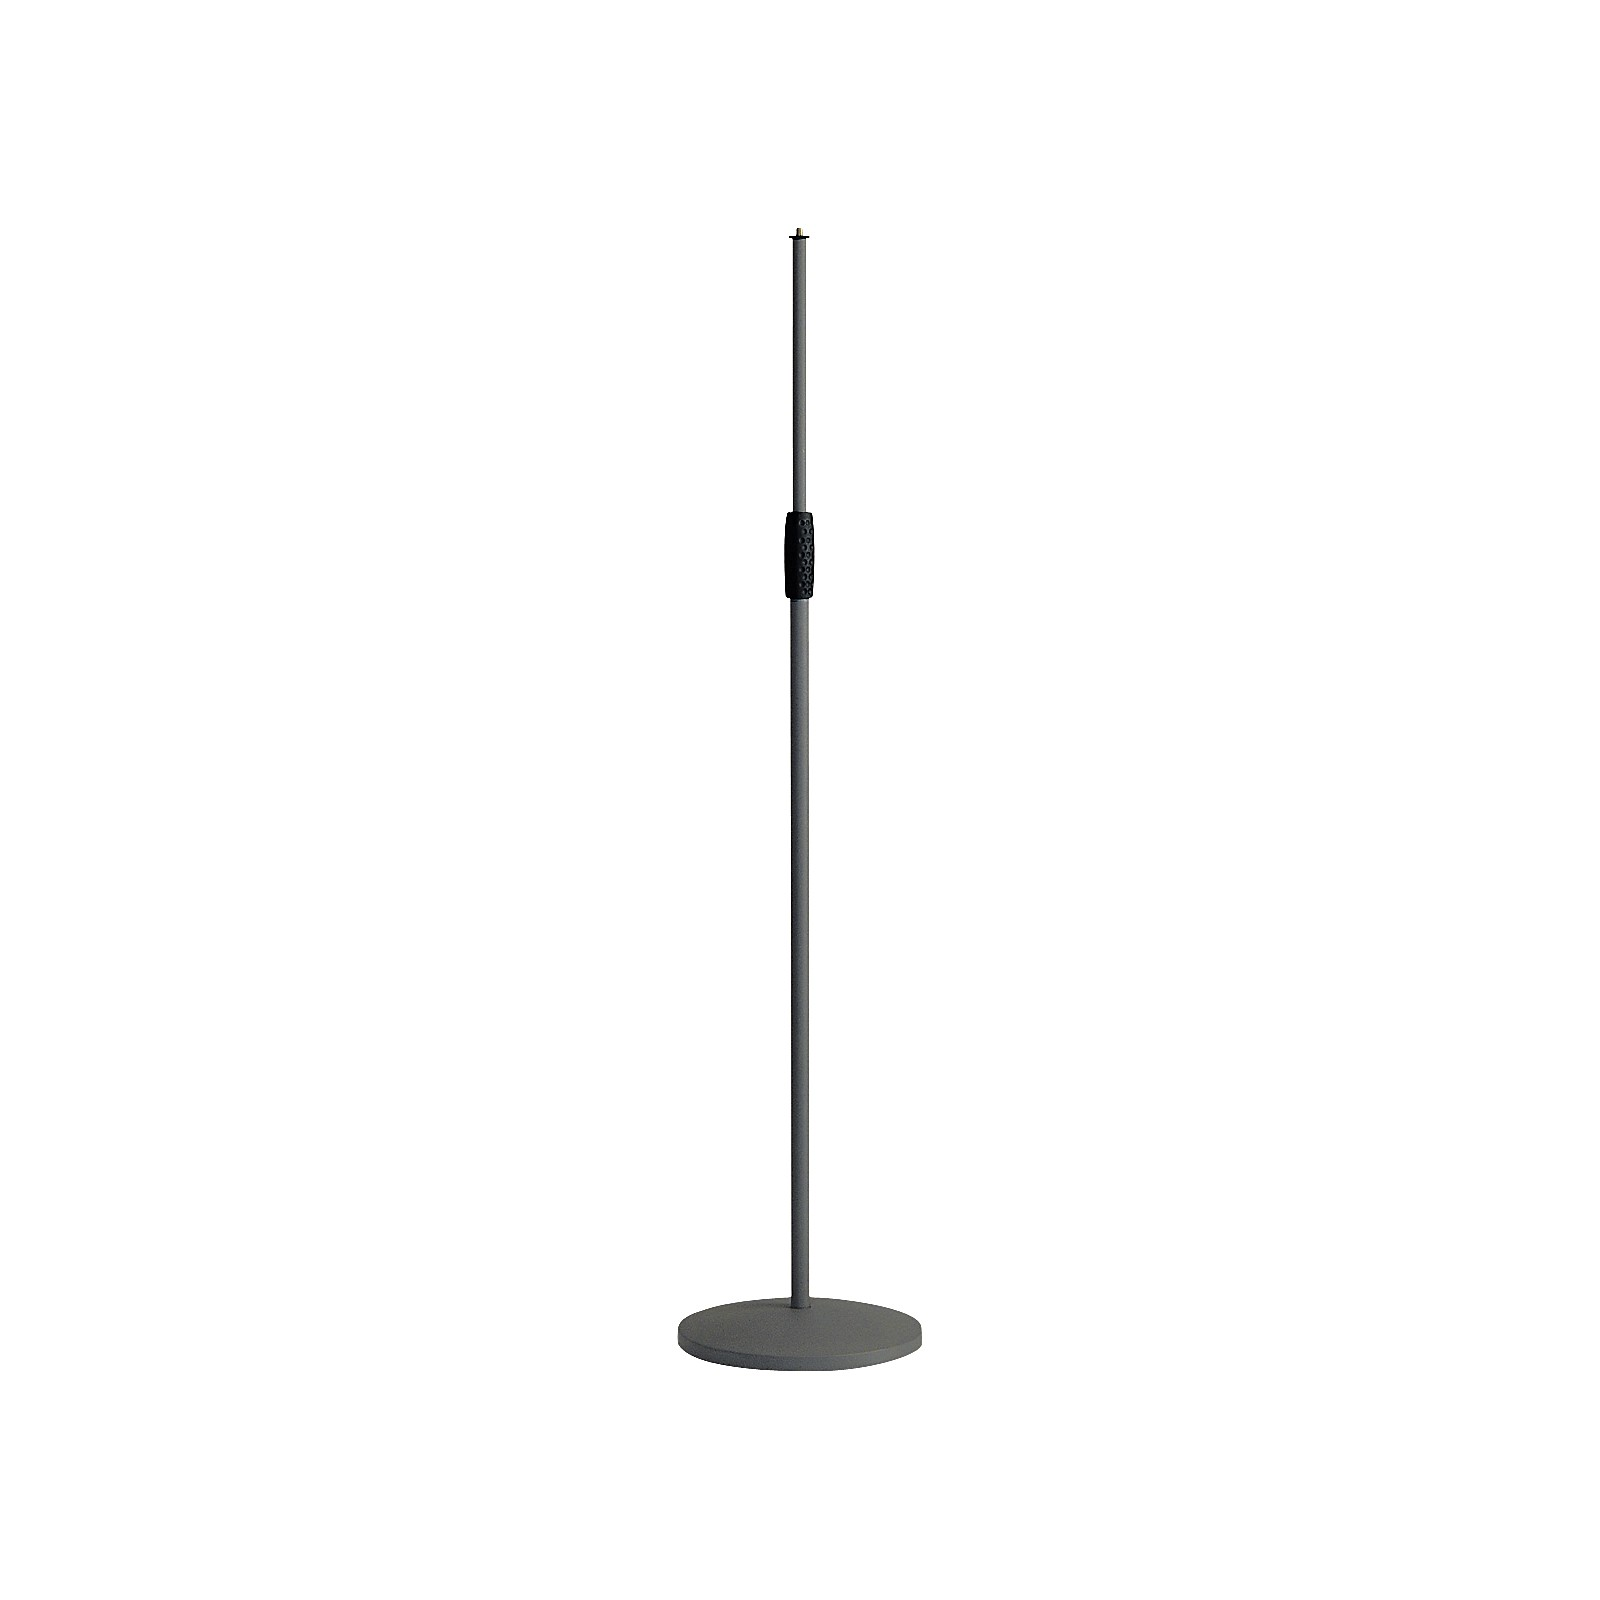 K&M 26010-500-55 Microphone Stand with Cast Iron Base